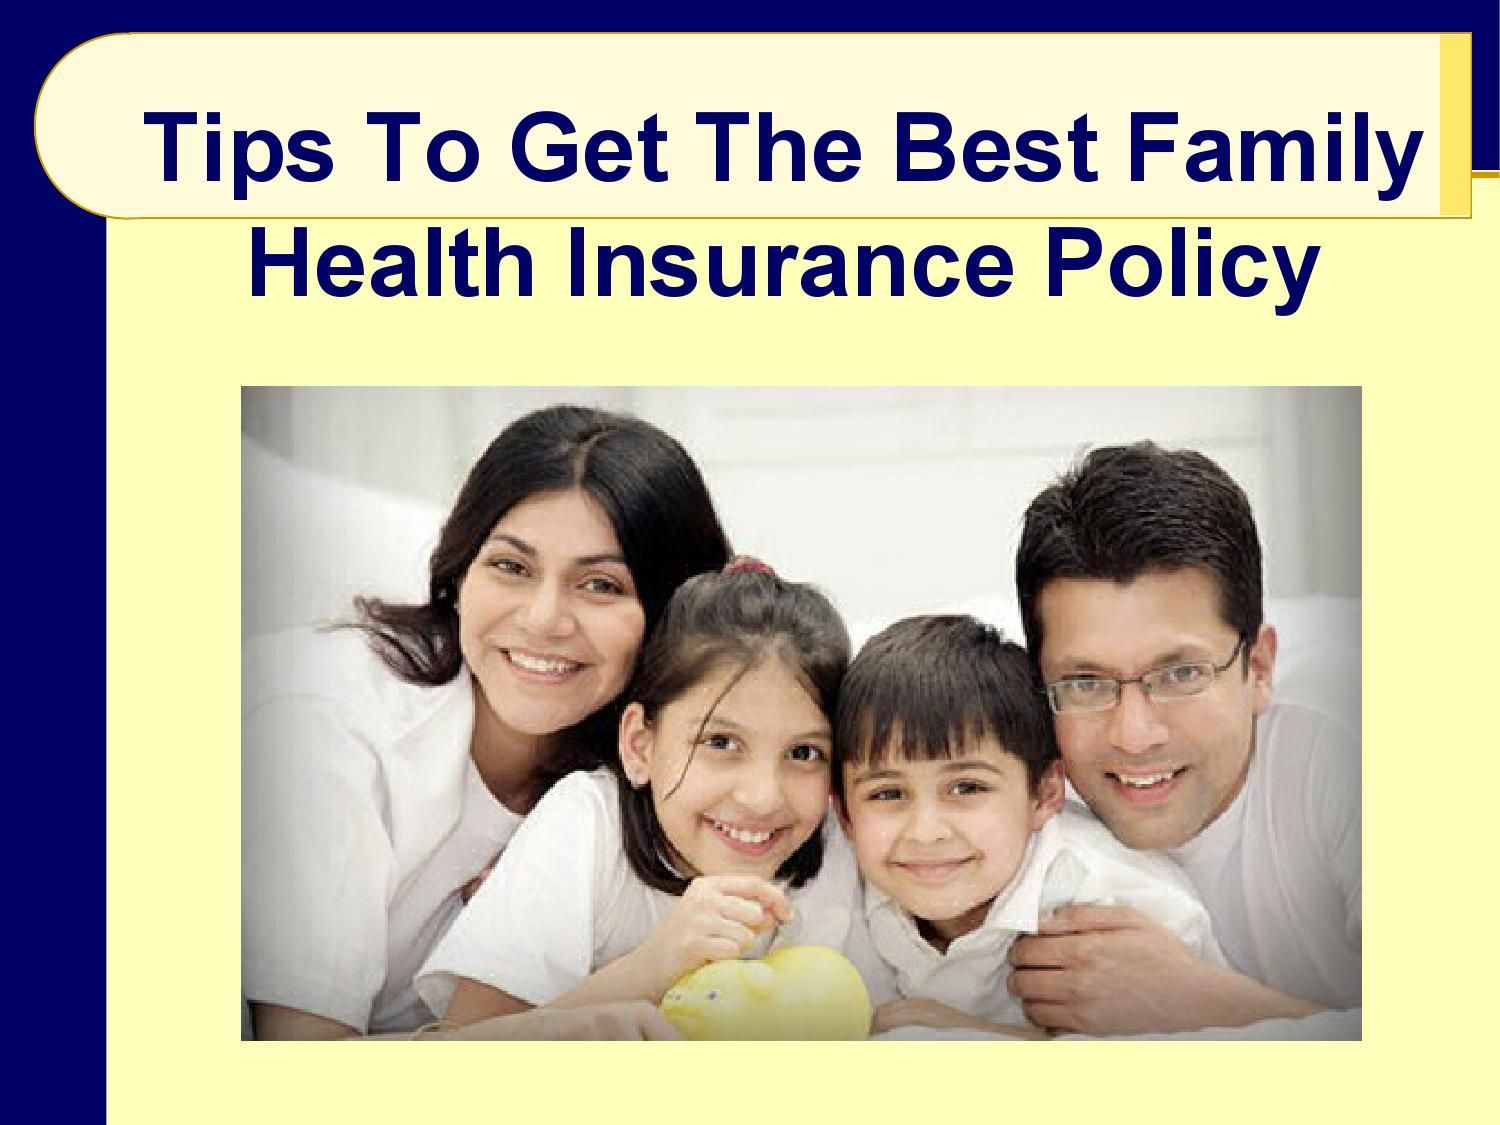 Tips To Get The Best Family Health Insurance Policy